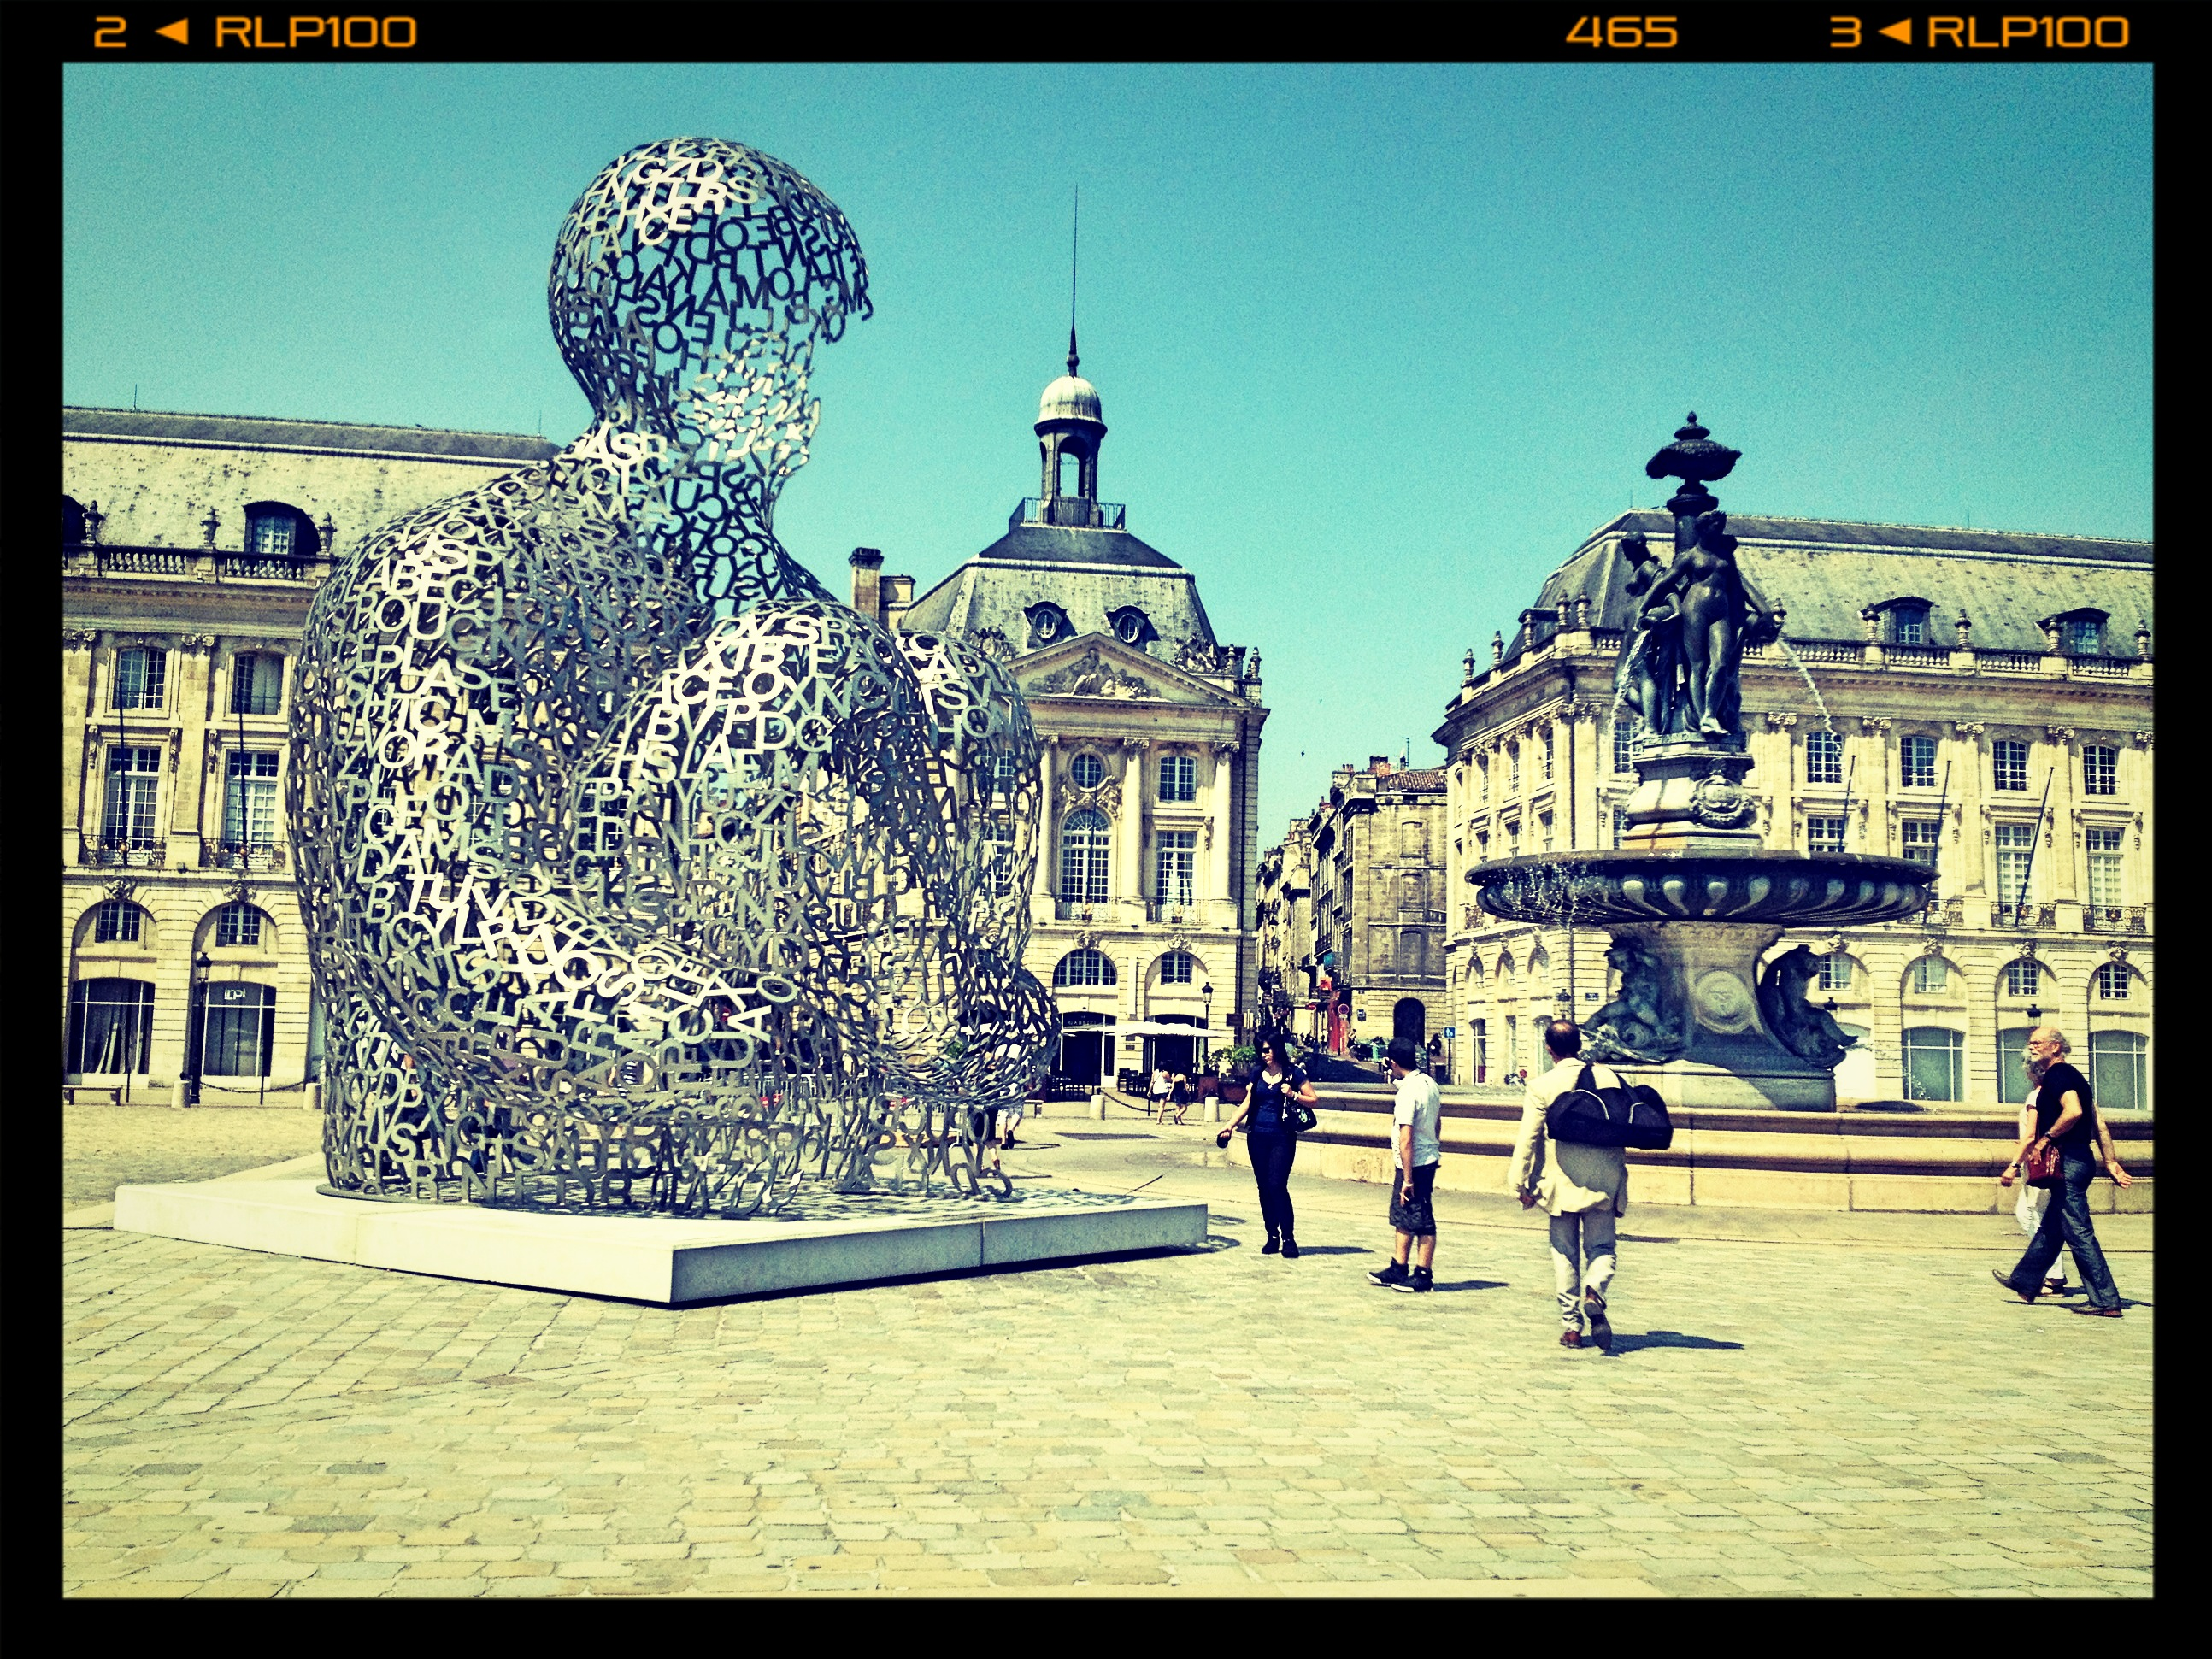 Bordeaux - old camera by Aude-la-randonneuse on DeviantArt